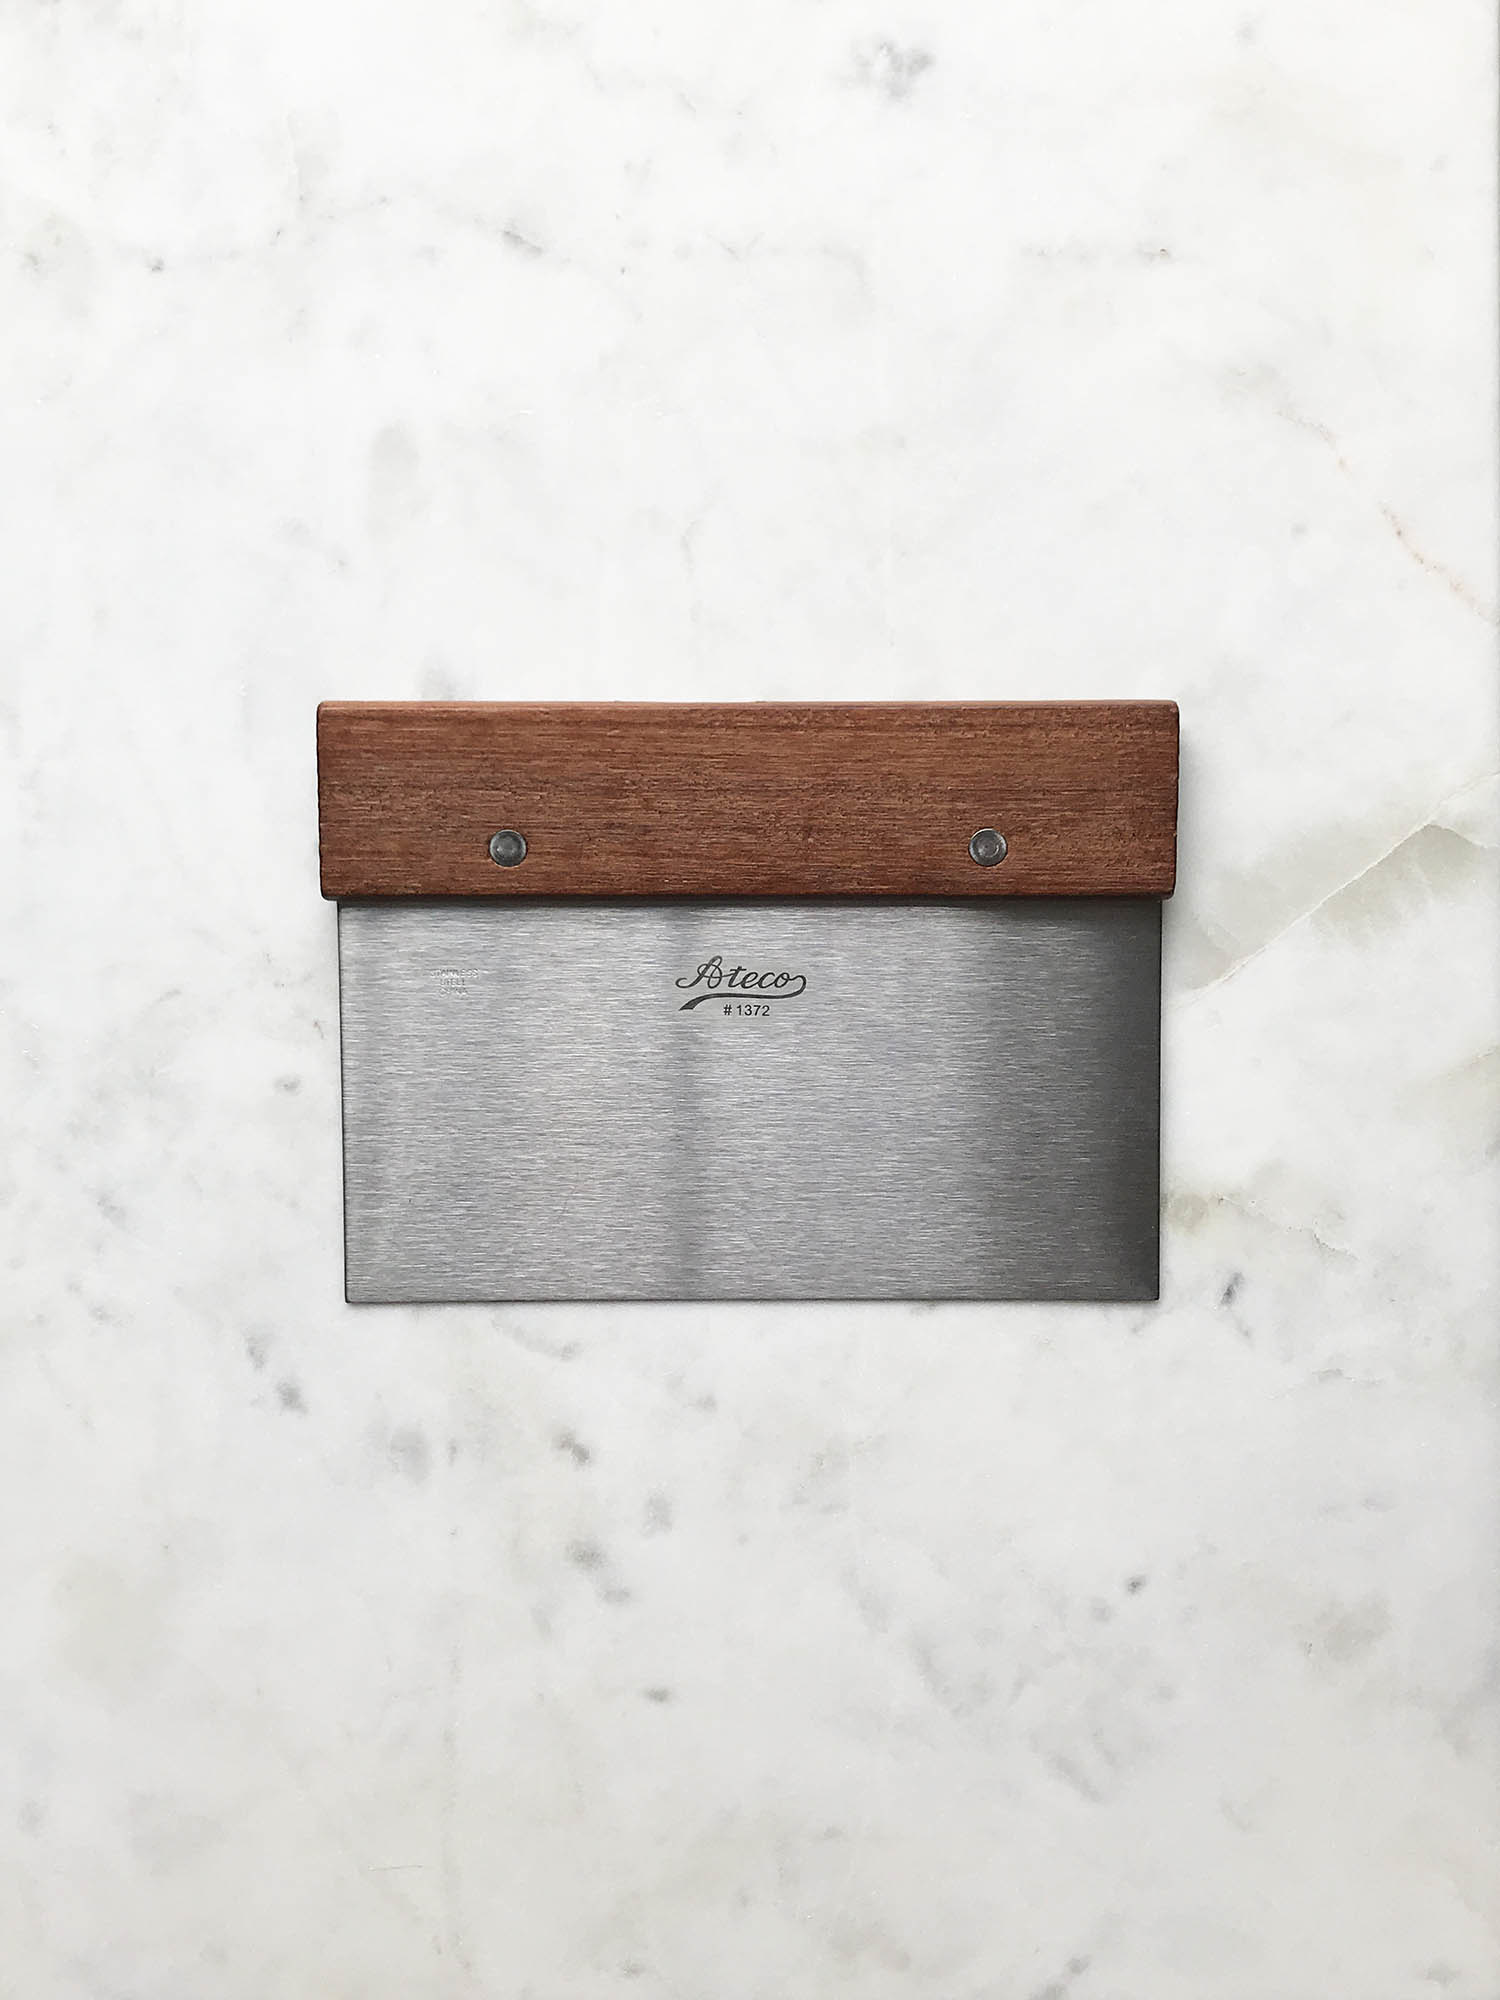 Ateco Wood & Stainless Bench Scraper-1